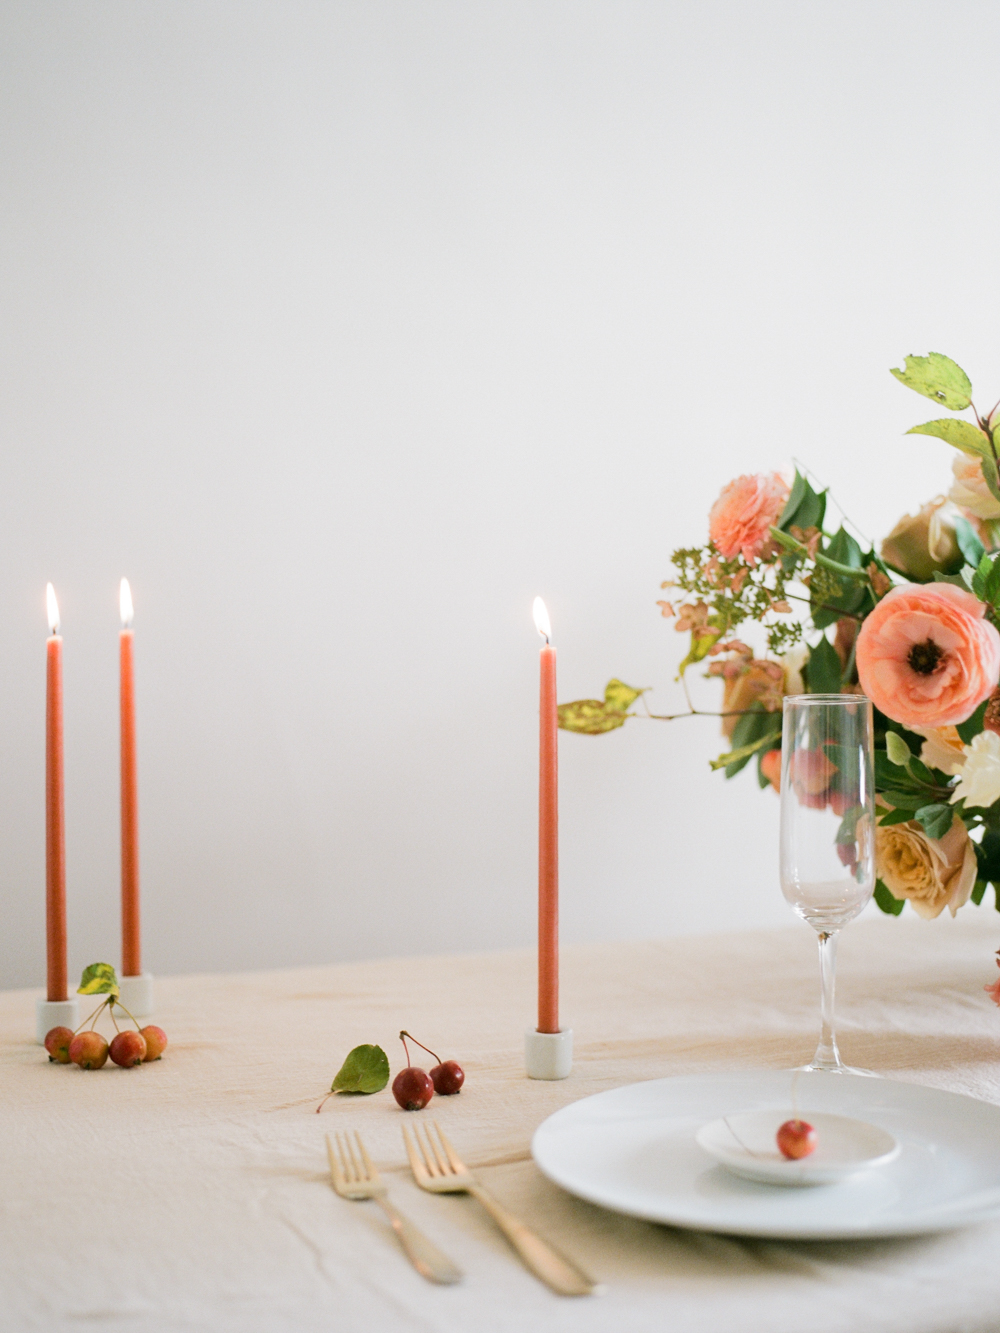 film wedding photographer - Houston wedding photographer - intimate wedding photographer - Christine Gosch - fall wedding inspiration - blush fall wedding - wedding flowers - fall wedding flowers - minimal wedding table inspo - Maxit Flower Design-5.jpg